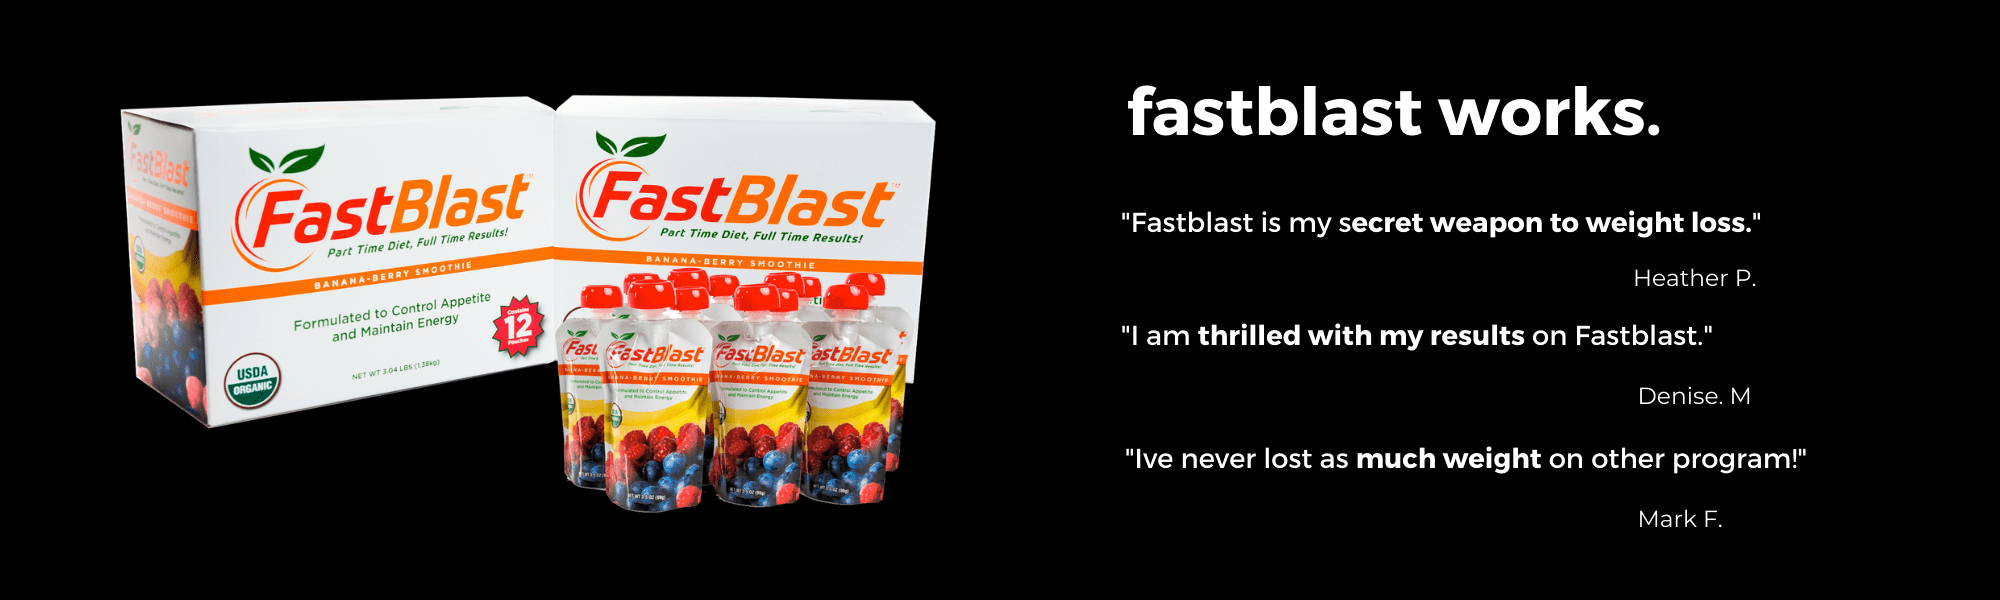 Fastblast works for weight loss